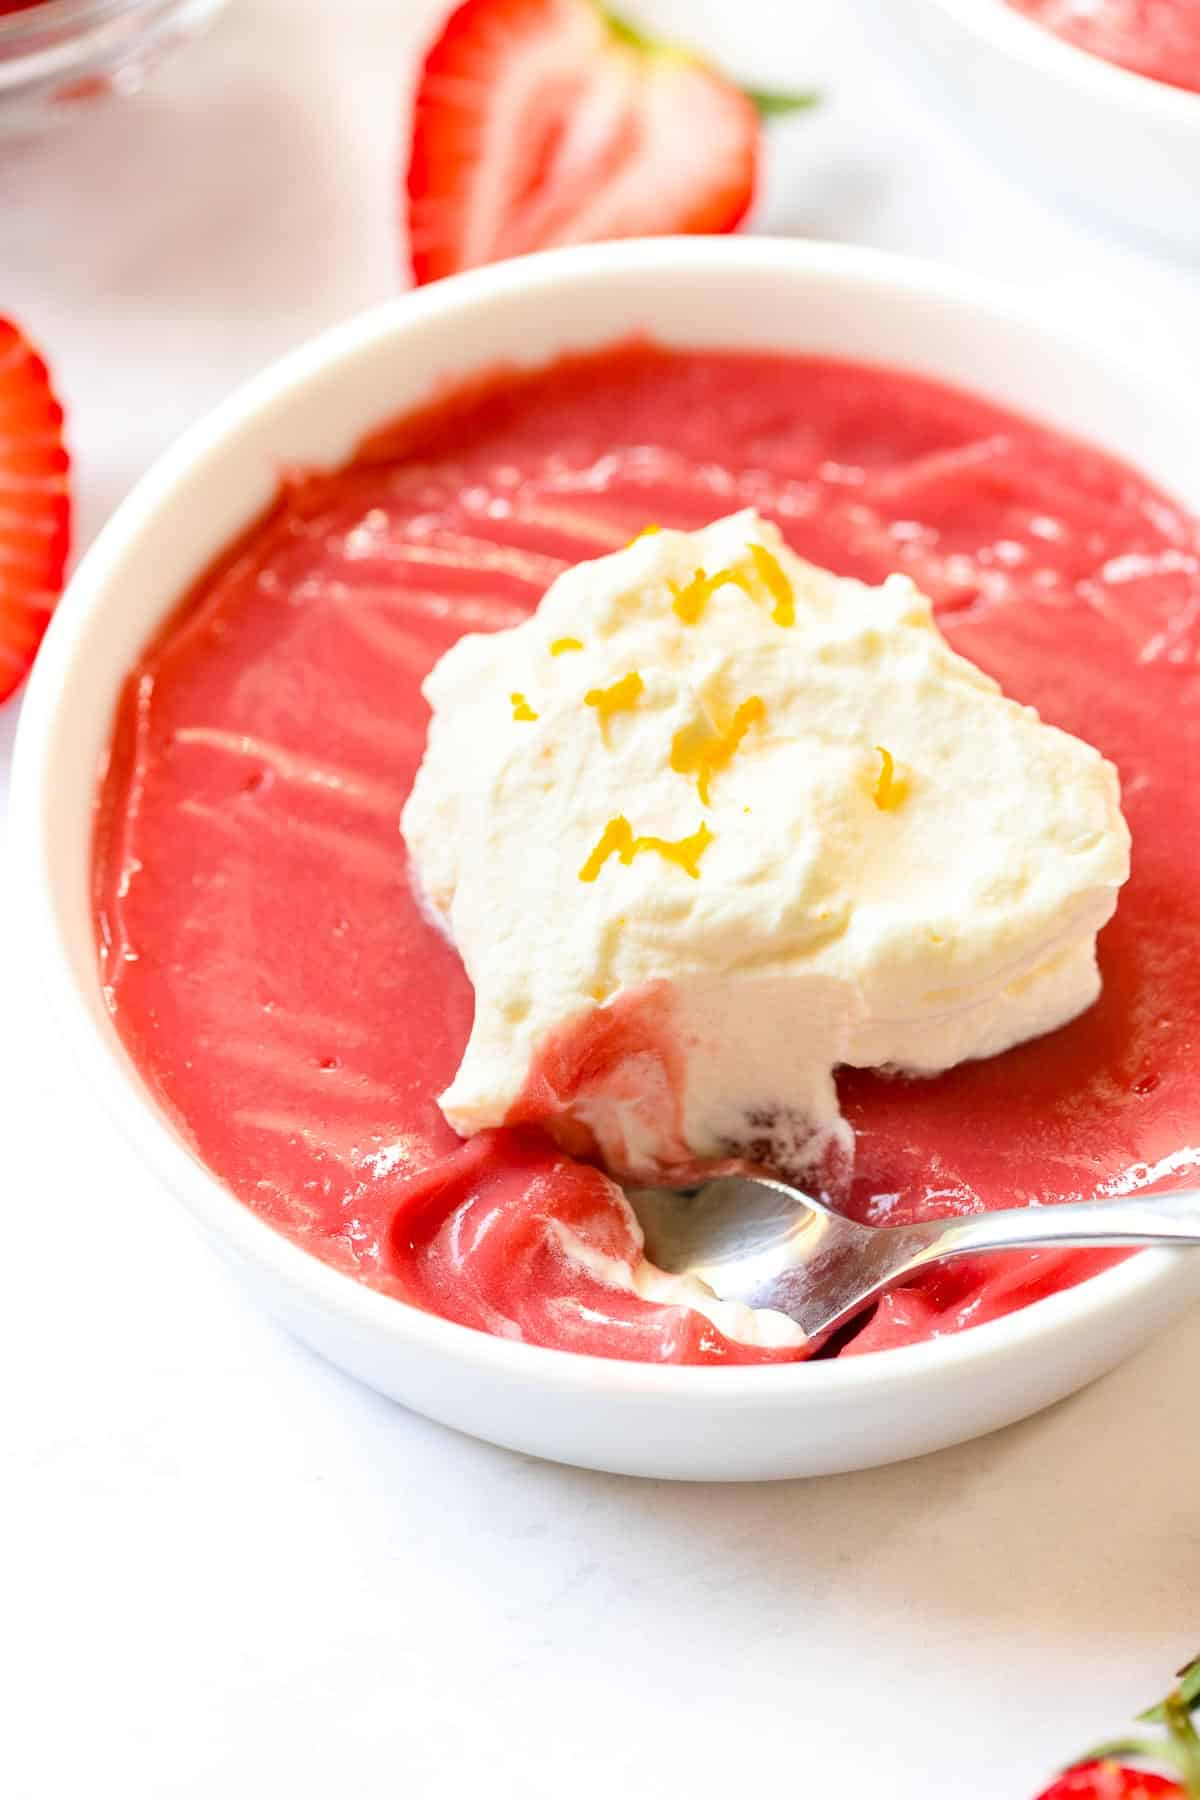 Bowl of strawberry pudding with bite missing.